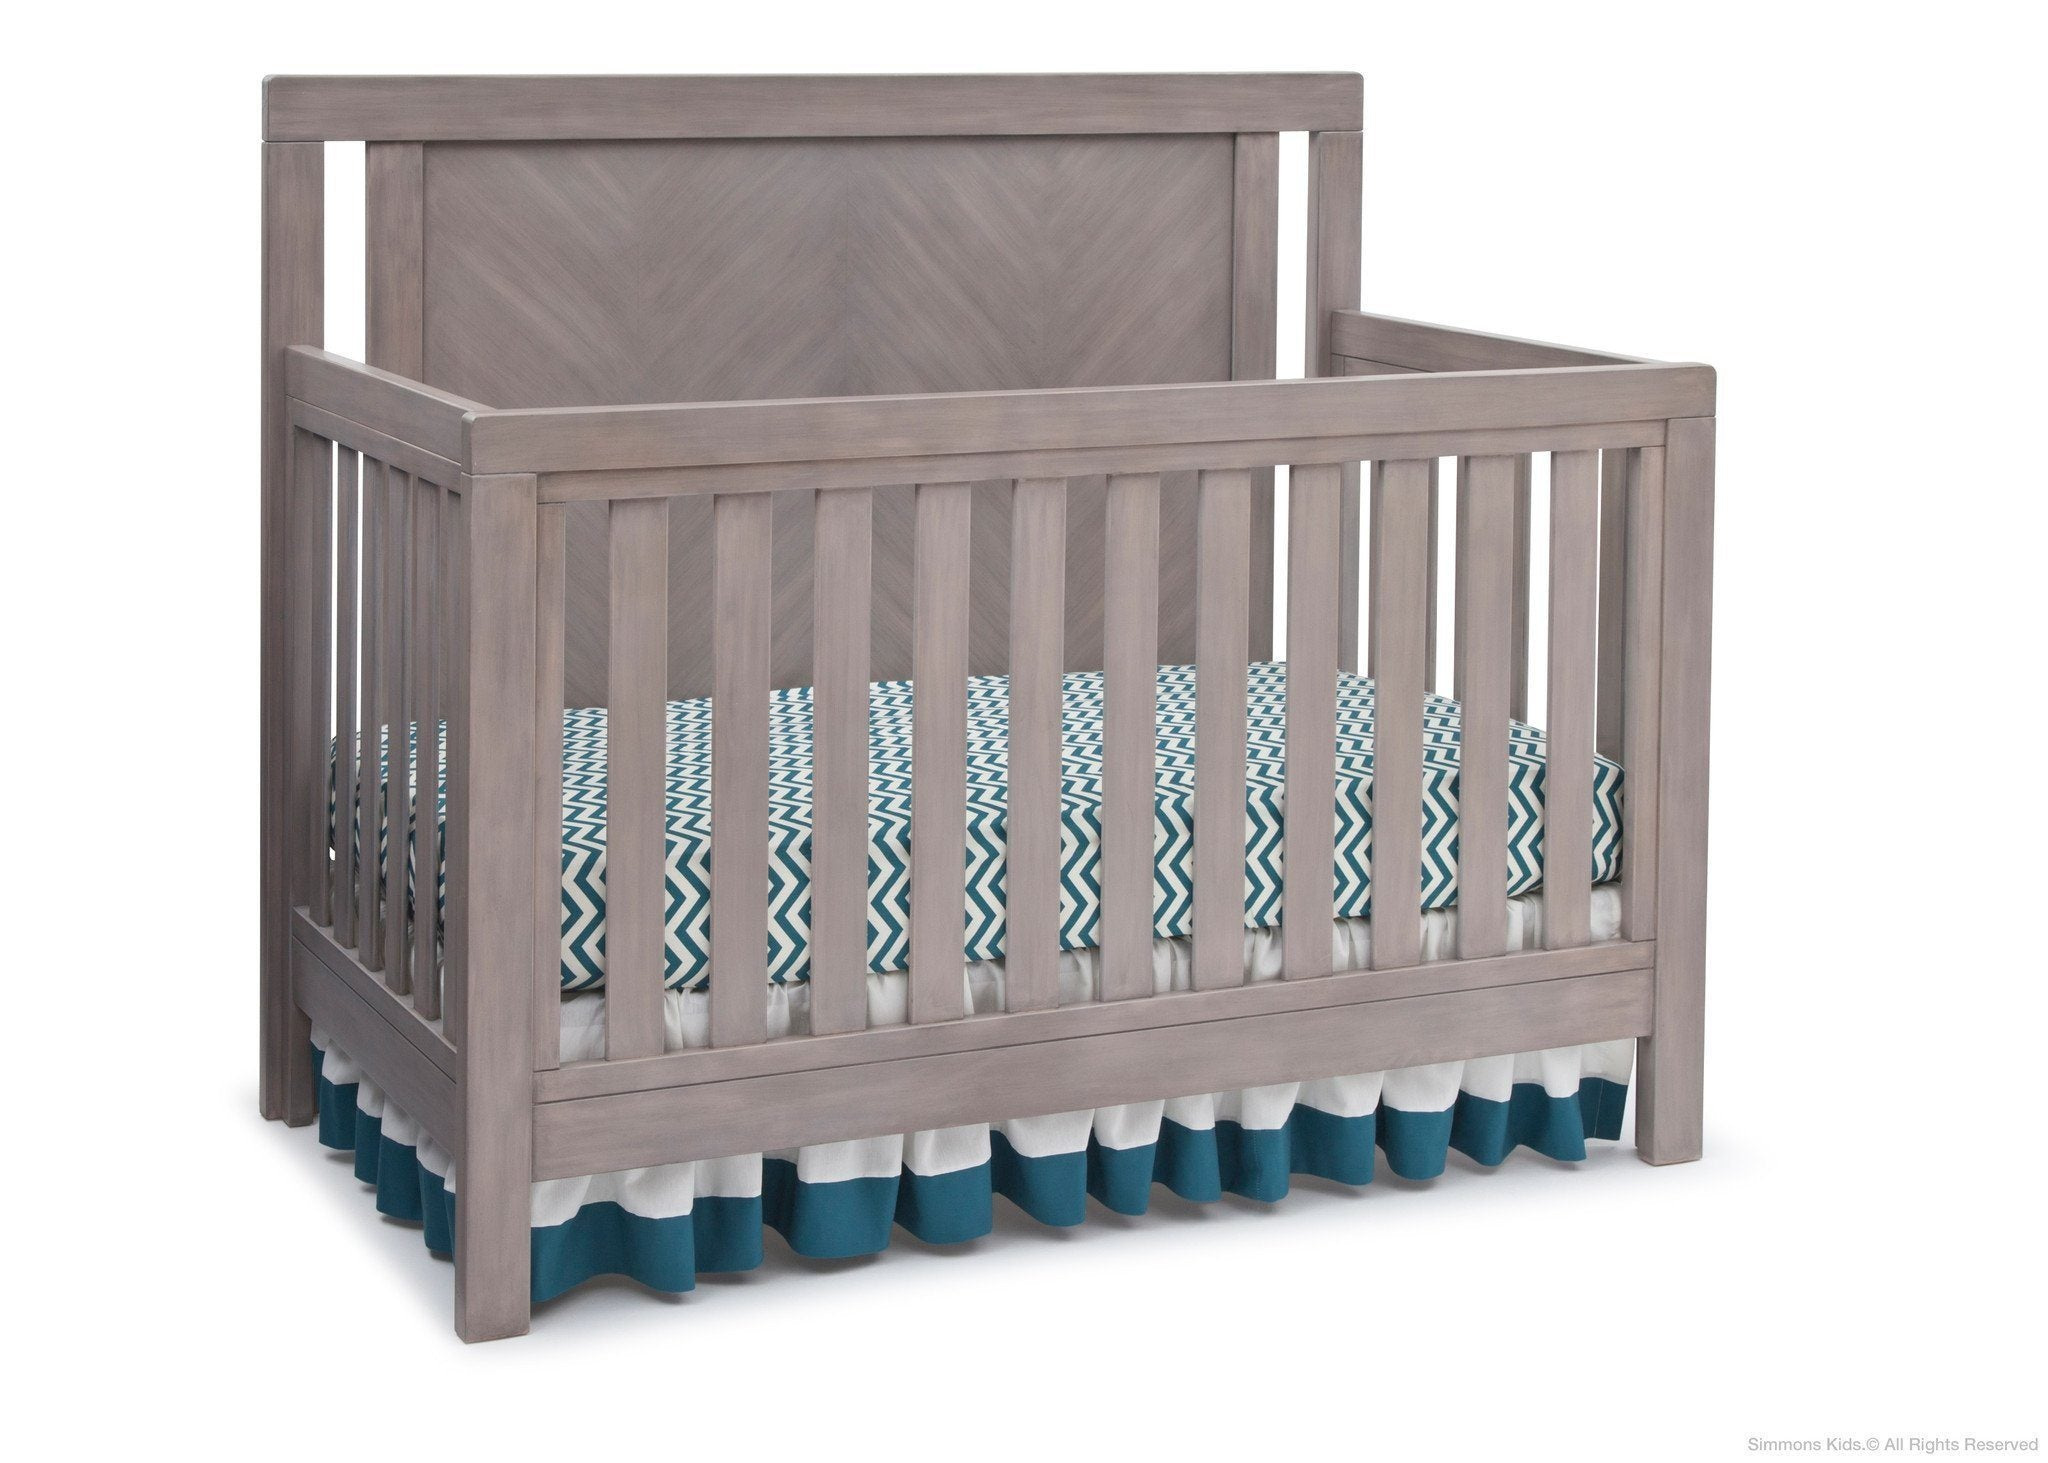 Simmons Kids Stained Grey (054) Chevron Crib 'N' More, Crib Conversion